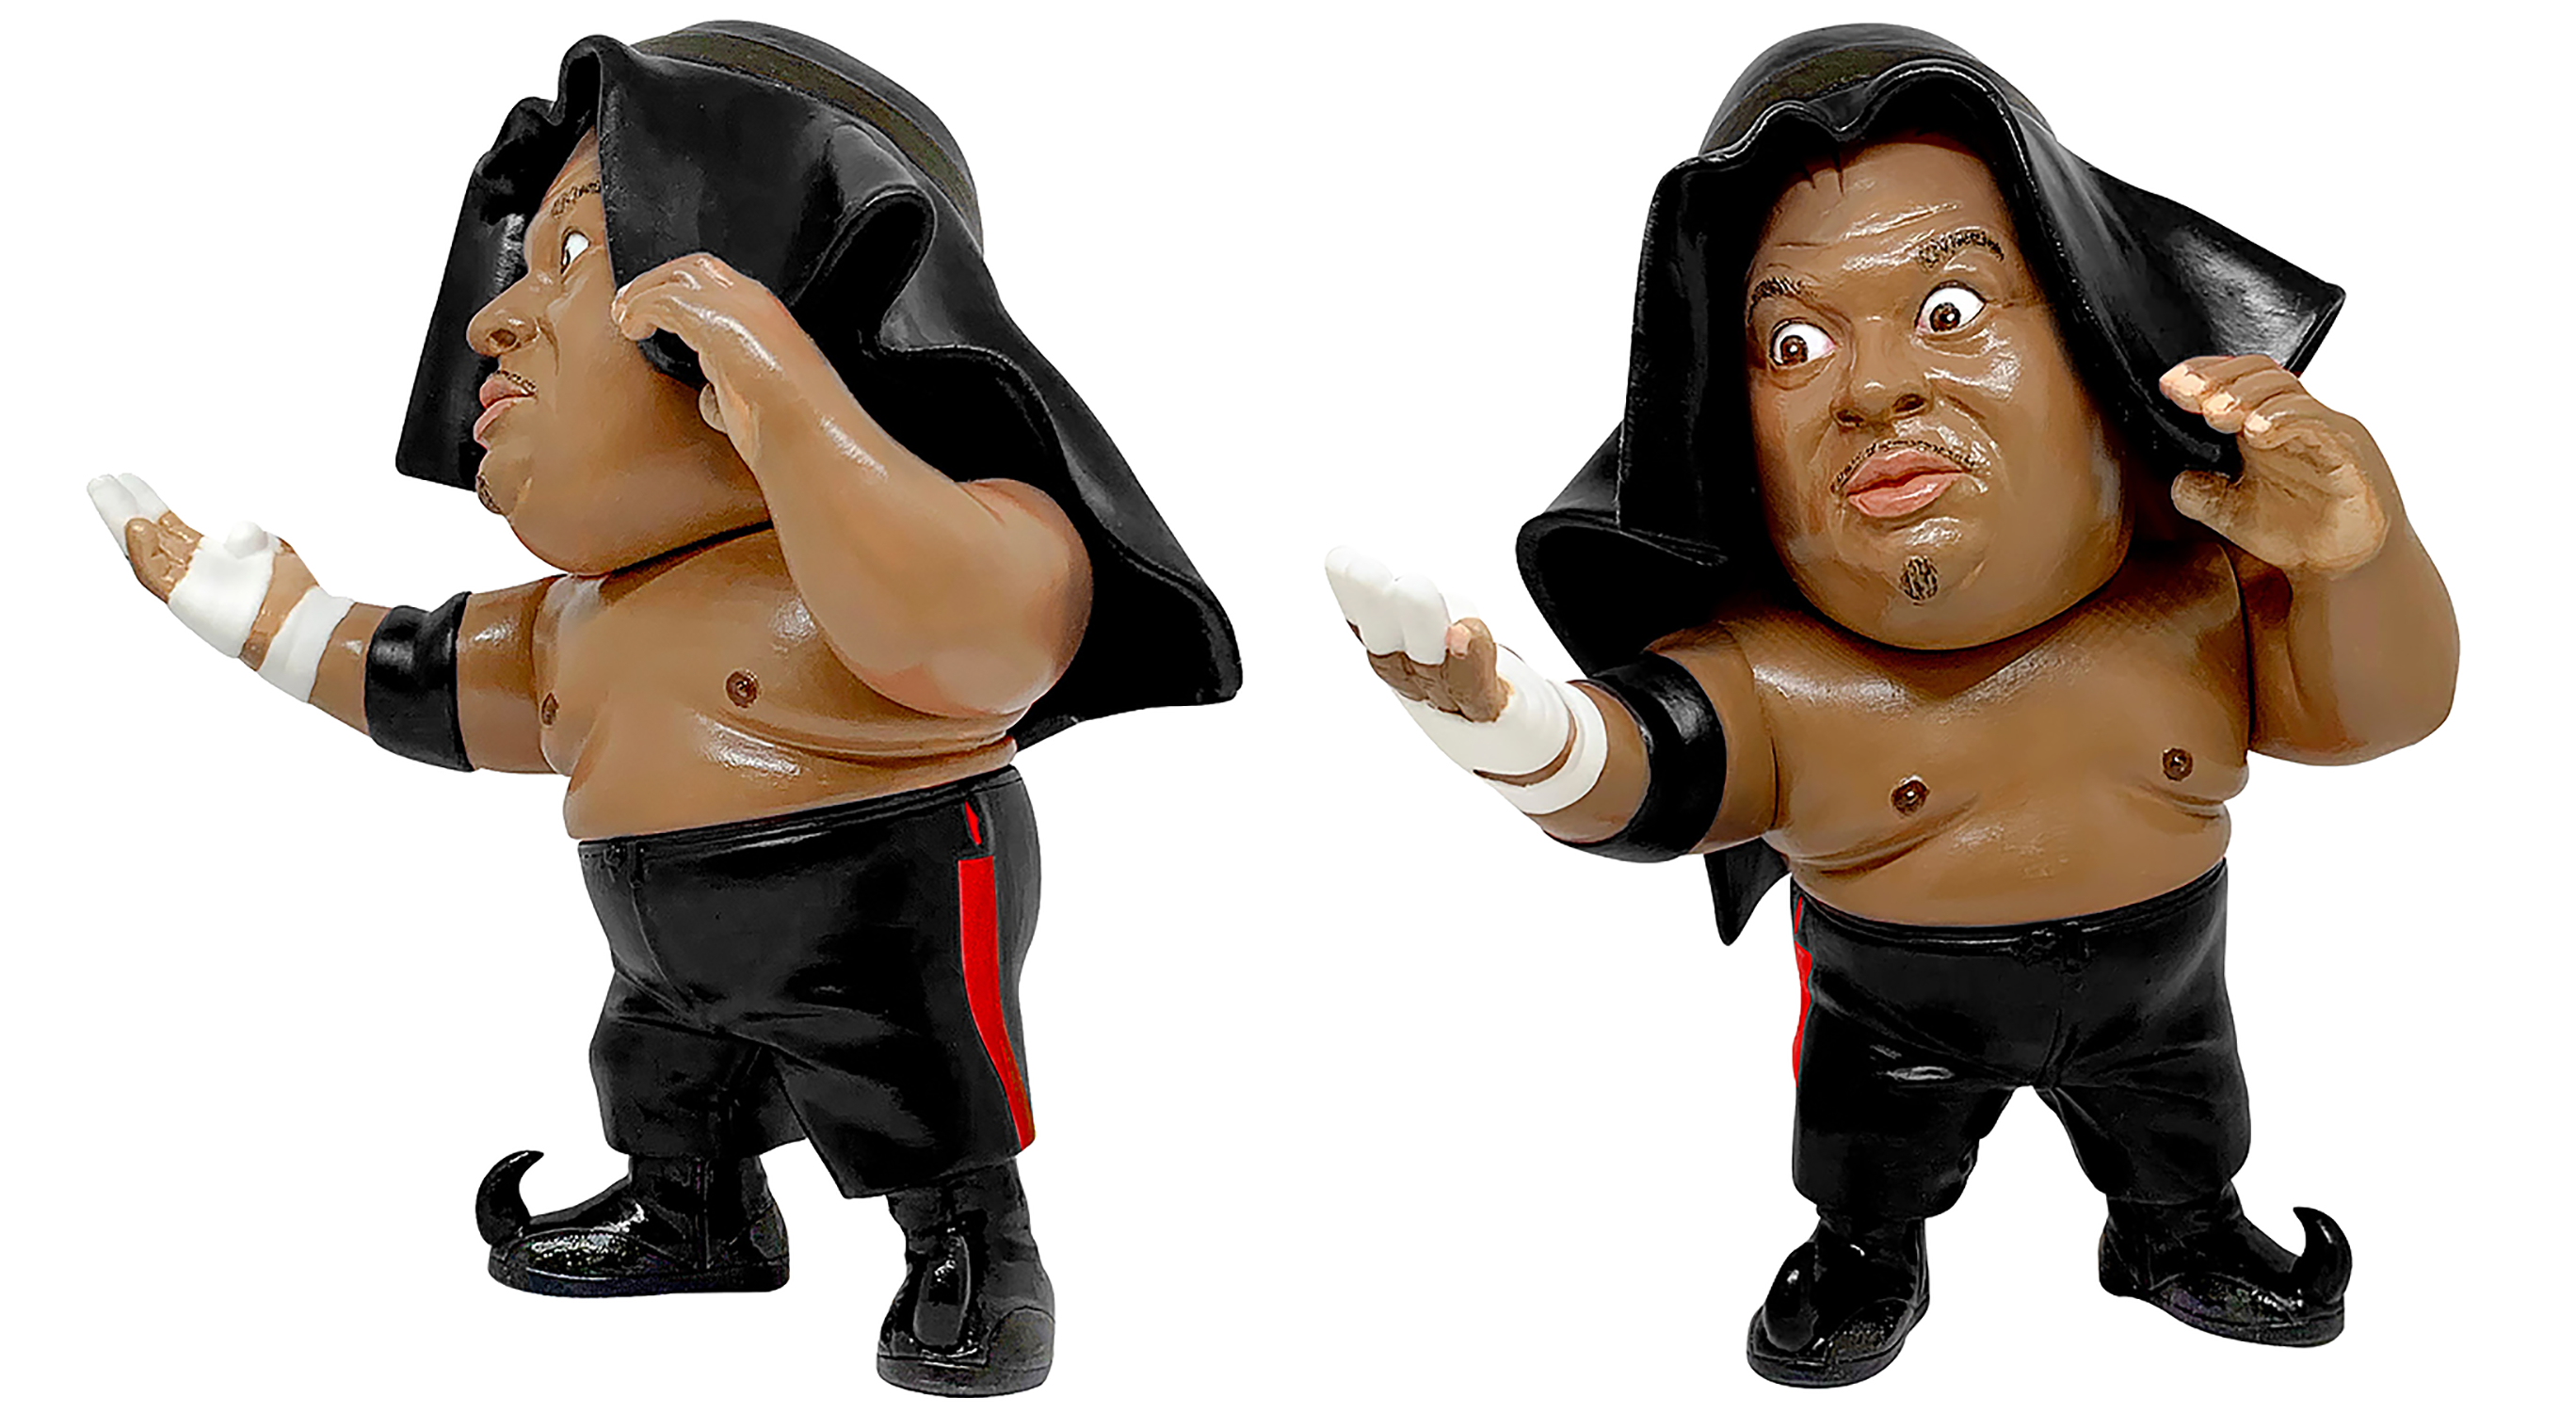 16D COLL LEGEND MASTERS ABDULLAH THE BUTCHER VINYL FIG BLK (